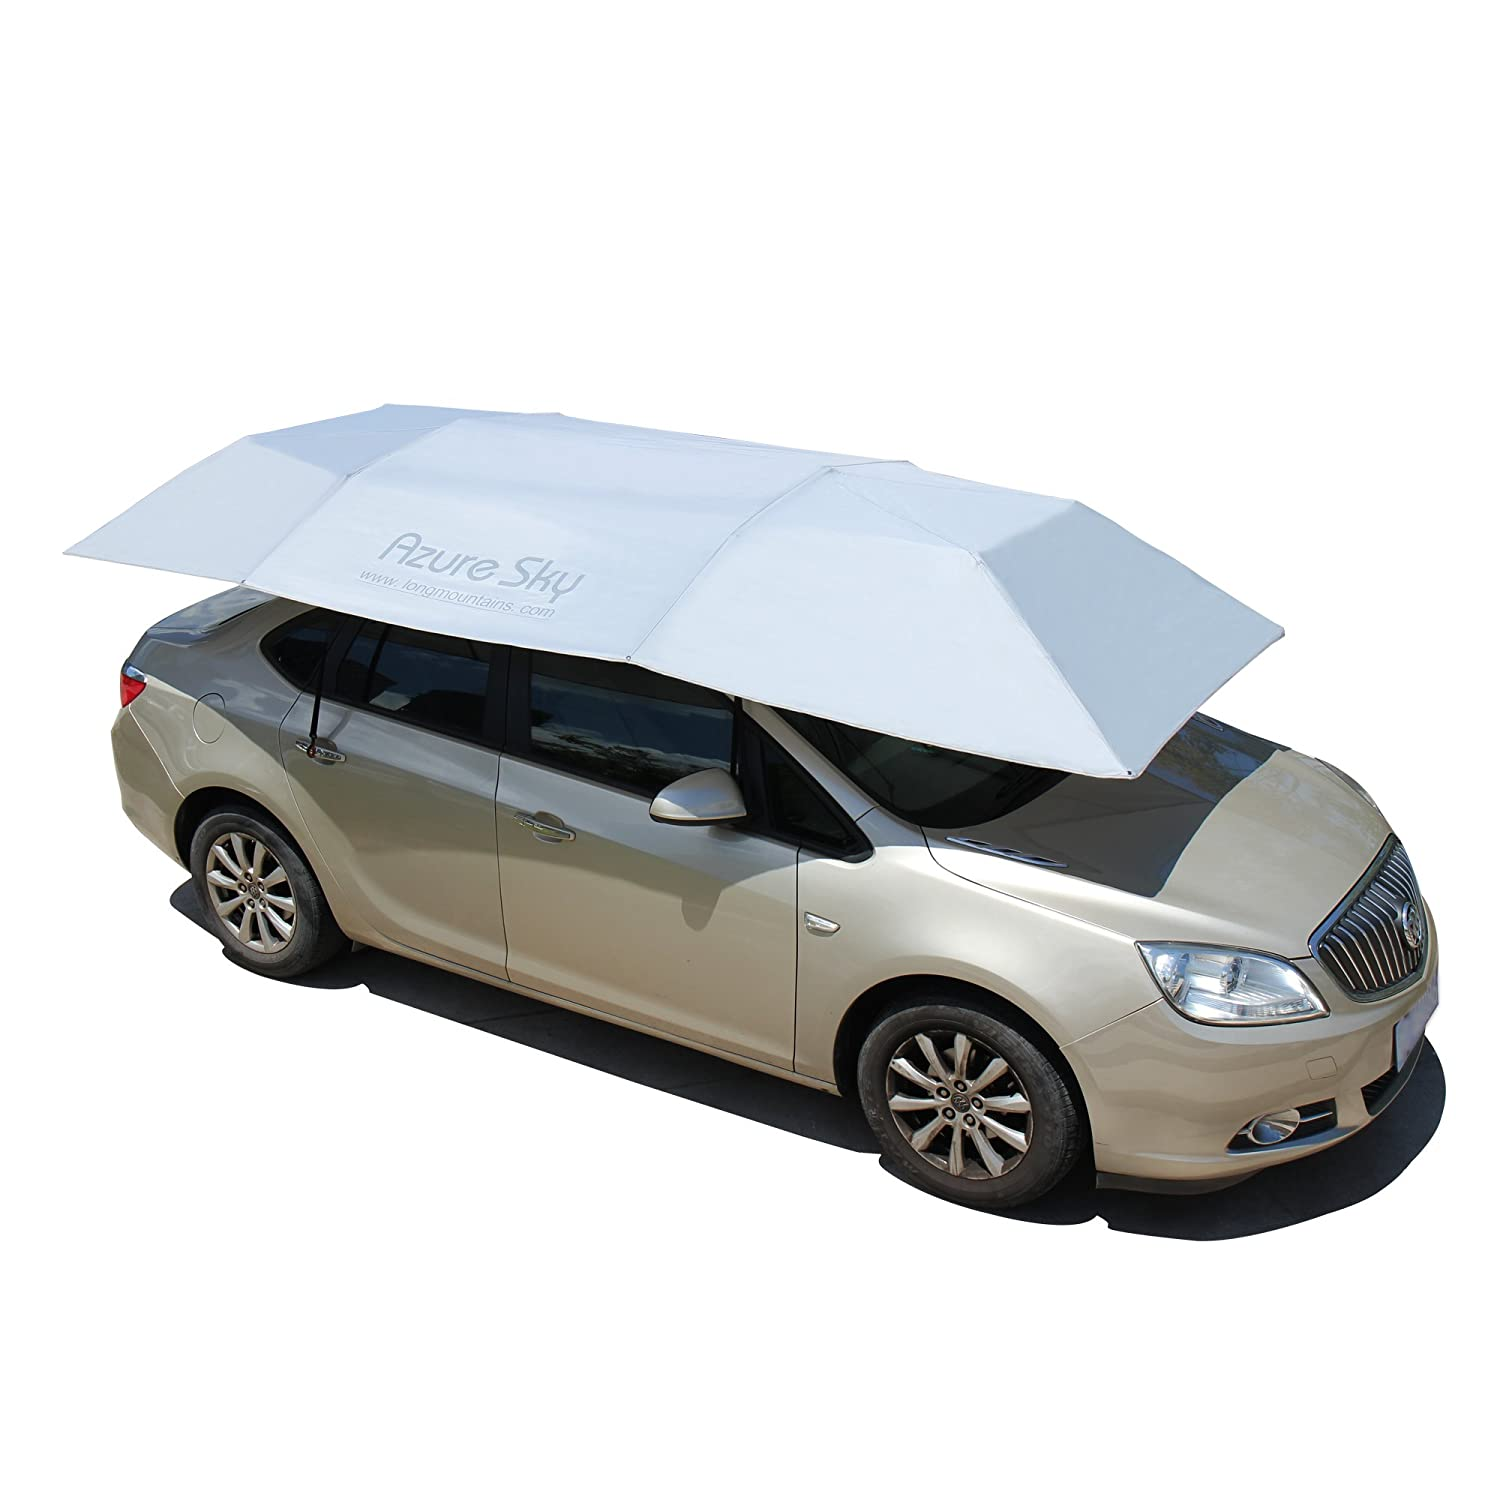 Azure Sky ASY-F Universal Car Tent Movable Carport Folded Portable Automobile Protection Car Umbrella Sunproof Car Canopy Cover with Remote Control - Silver